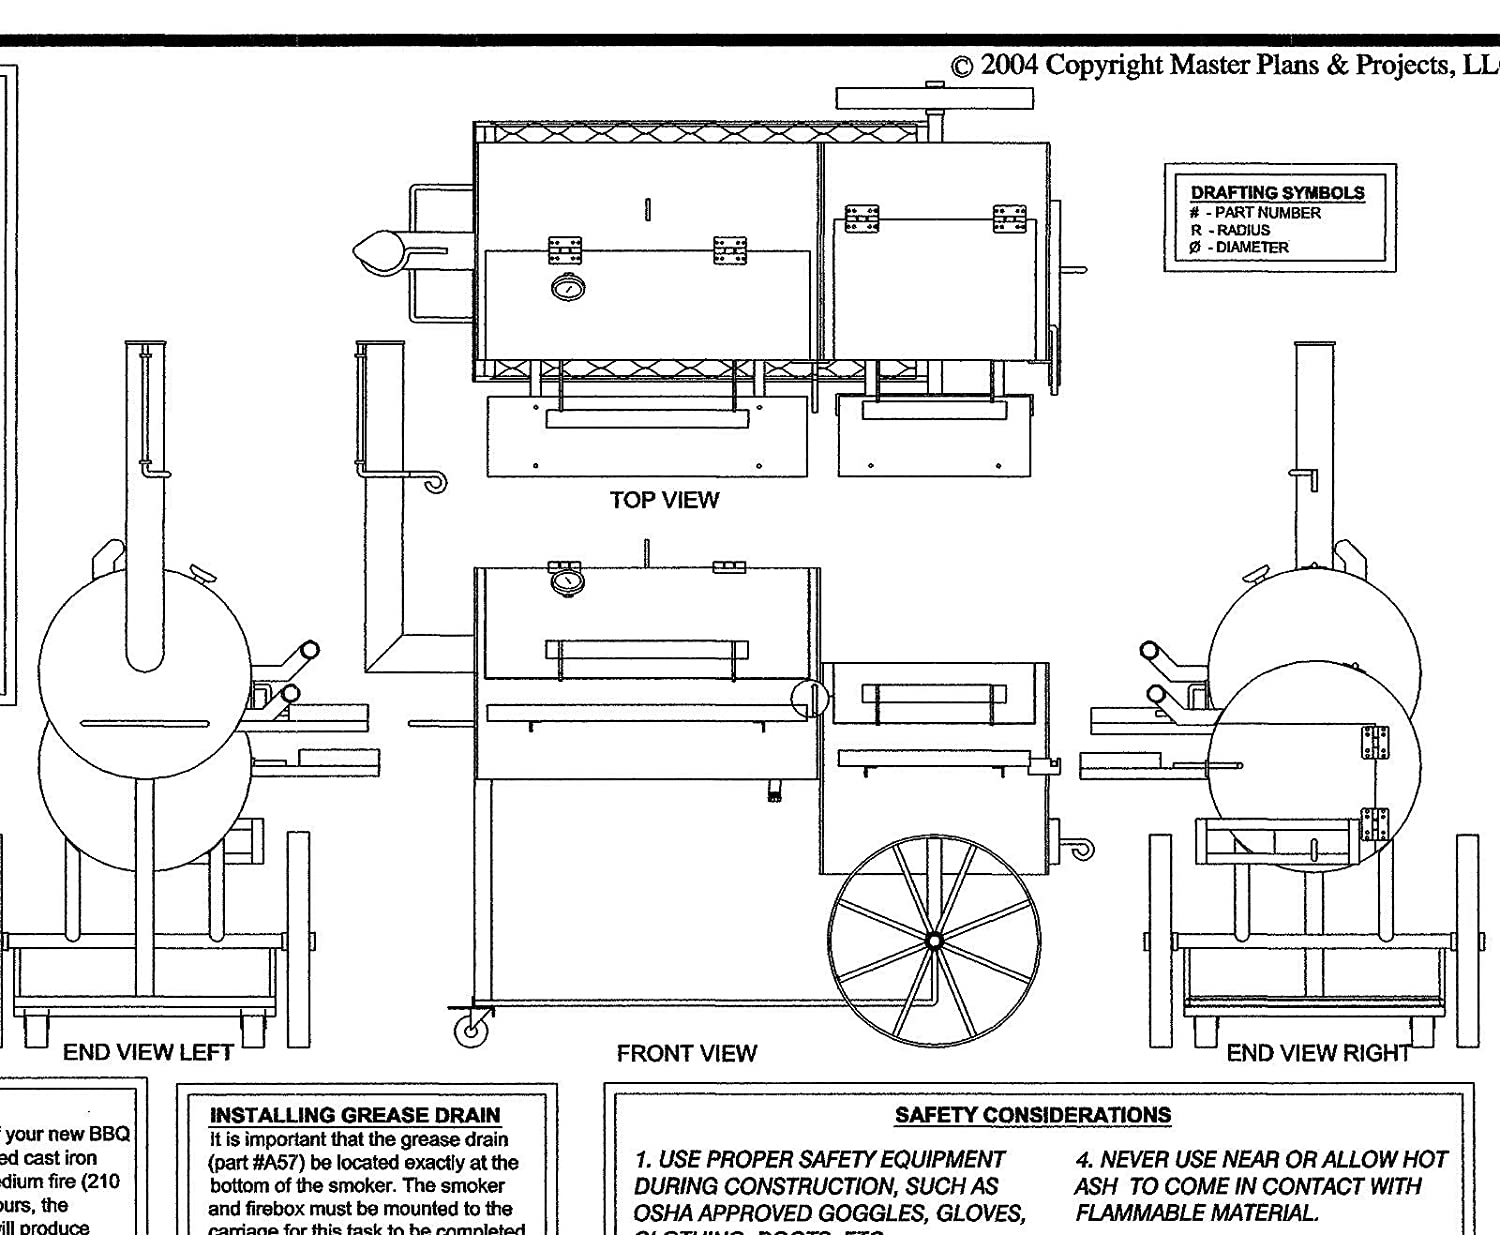 Amazon 32 x 20 bbq smokerpit grill plans blueprints amazon 32 x 20 bbq smokerpit grill plans blueprints model sp 1301 automotive malvernweather Choice Image